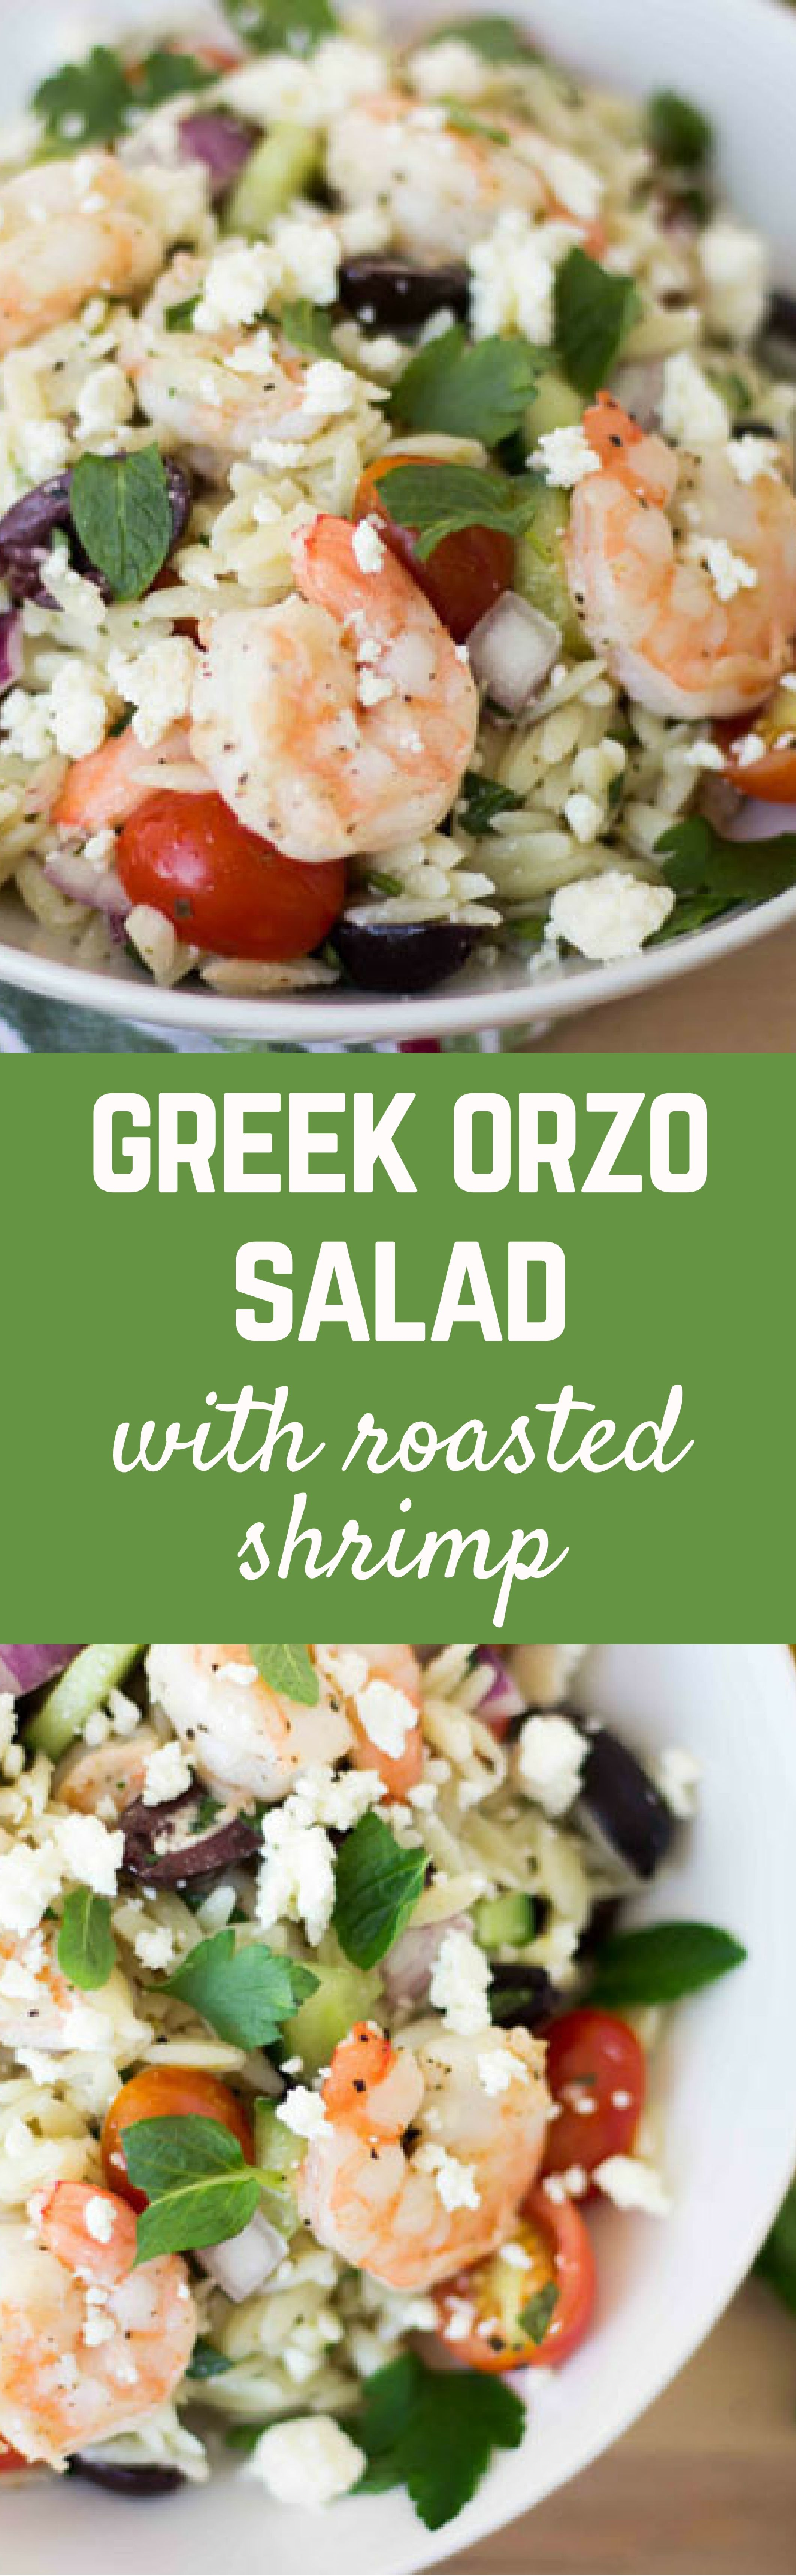 Zo S Kitchen Chicken Orzo Greek Orzo Salad With Roasted Shrimp Guest Post  Recipe  Greek